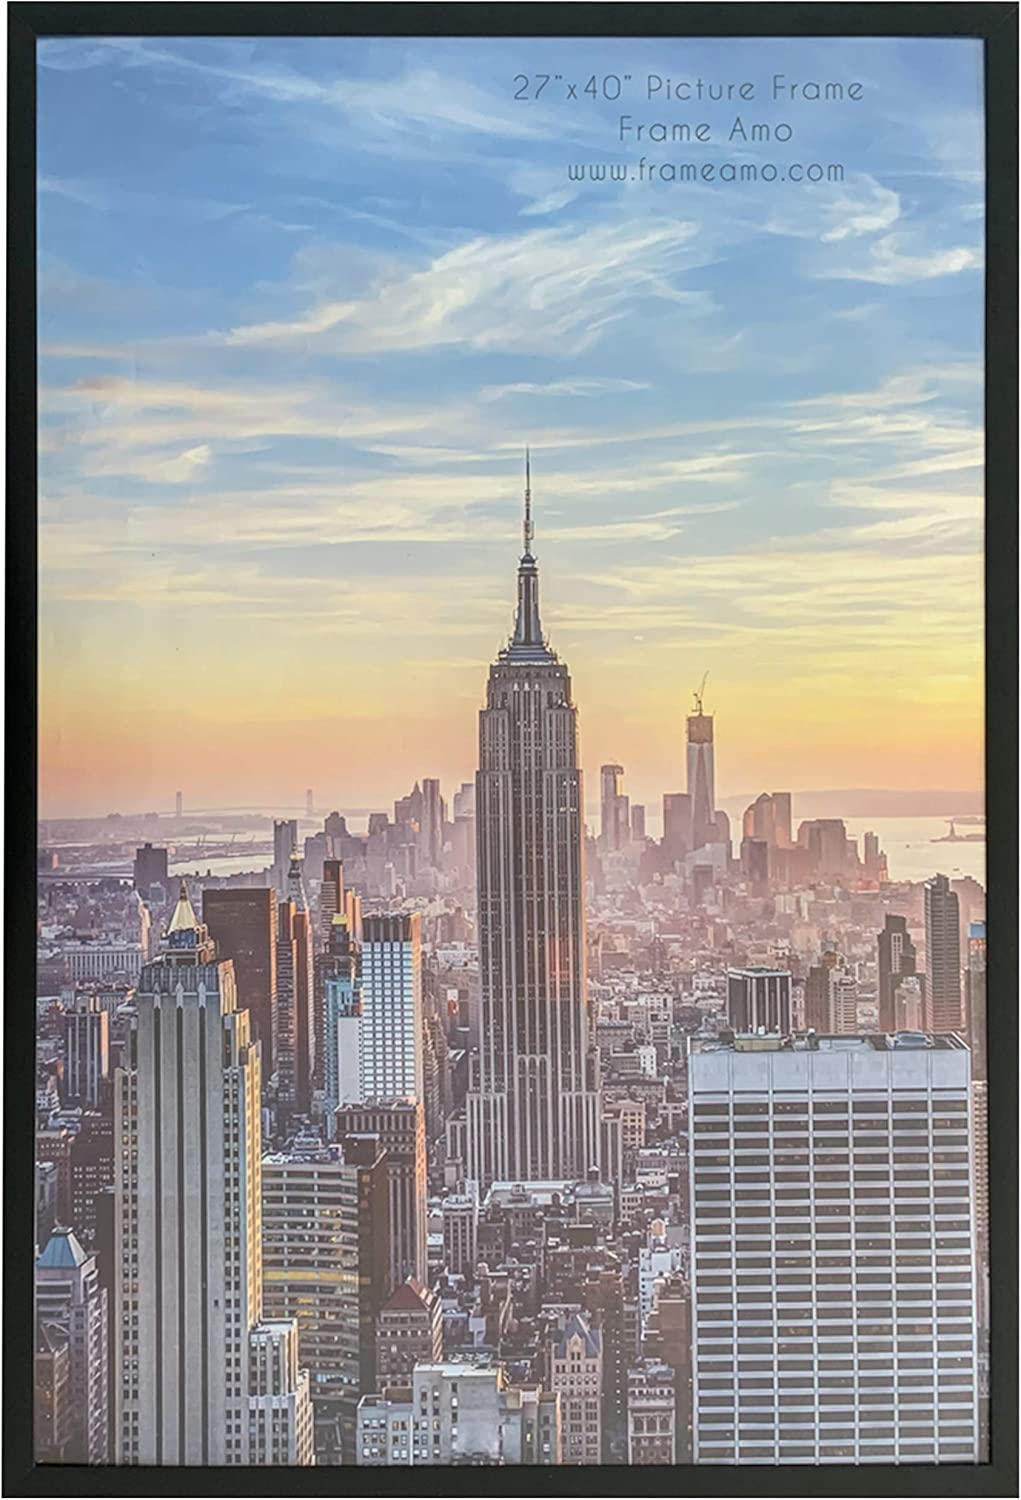 Frame Amo Black 27x40 Picture or Poster Frame, Aluminum Profile with Acrylic Front, 1 inch Wide Border